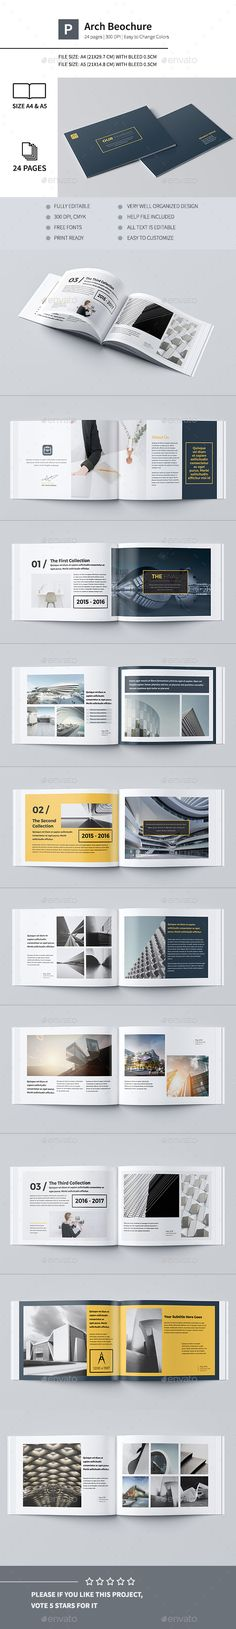 Our Portfolio Architecture 24 Pages A4 & A5 Template InDesign INDD. Download here: http://graphicriver.net/item/our-portfolio-architecture-24-pages-a4-a5/16254091?ref=ksioks